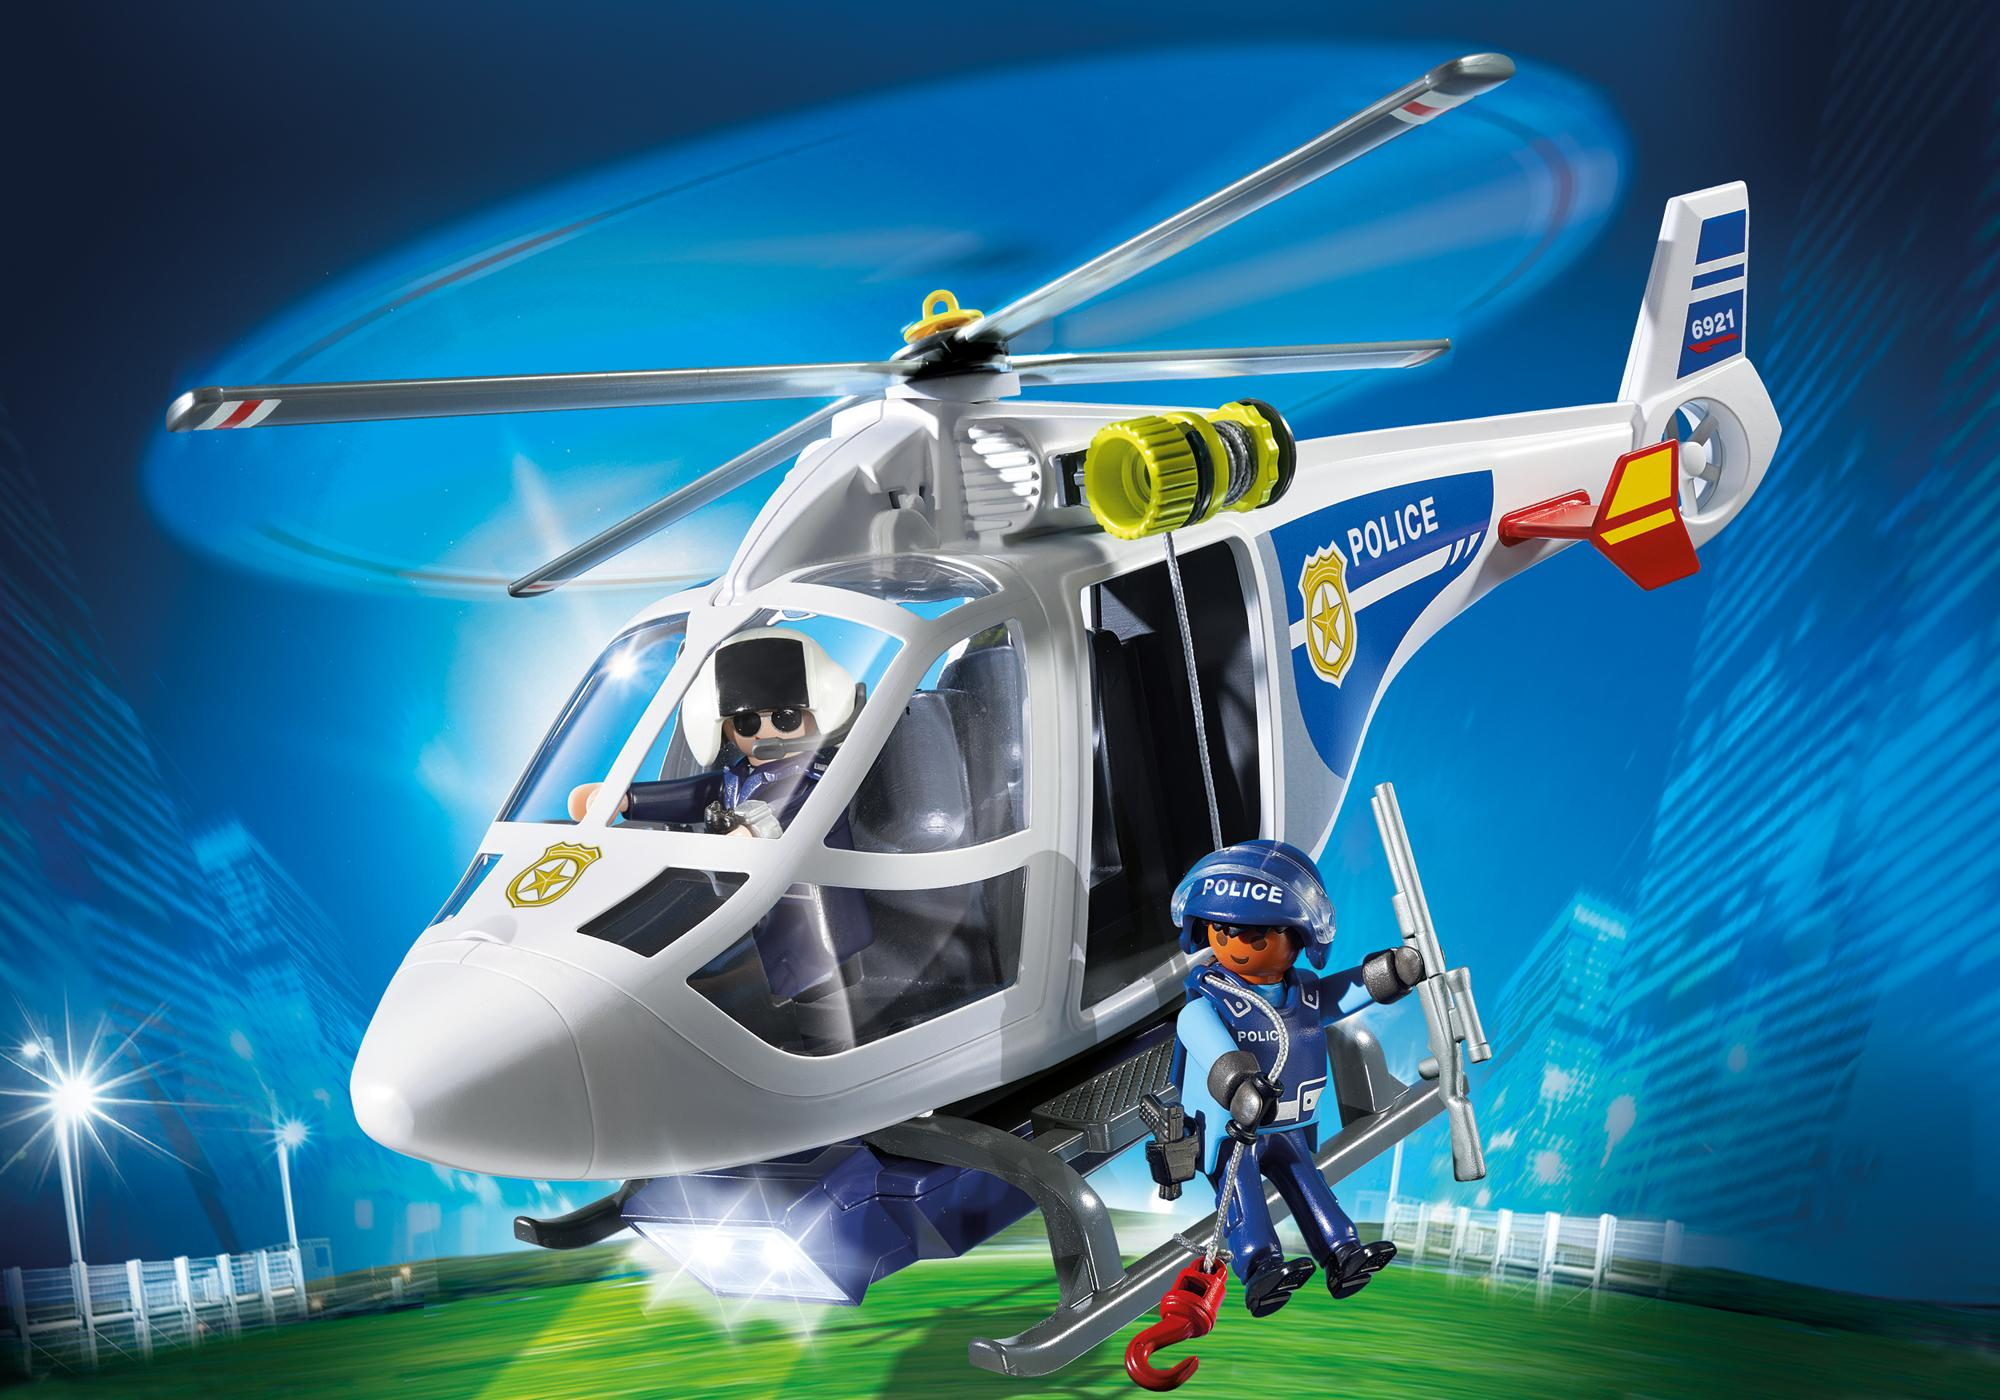 http://media.playmobil.com/i/playmobil/6921_product_detail/Int. Polizei-Helikopter mit LED-Suchscheinwerfer